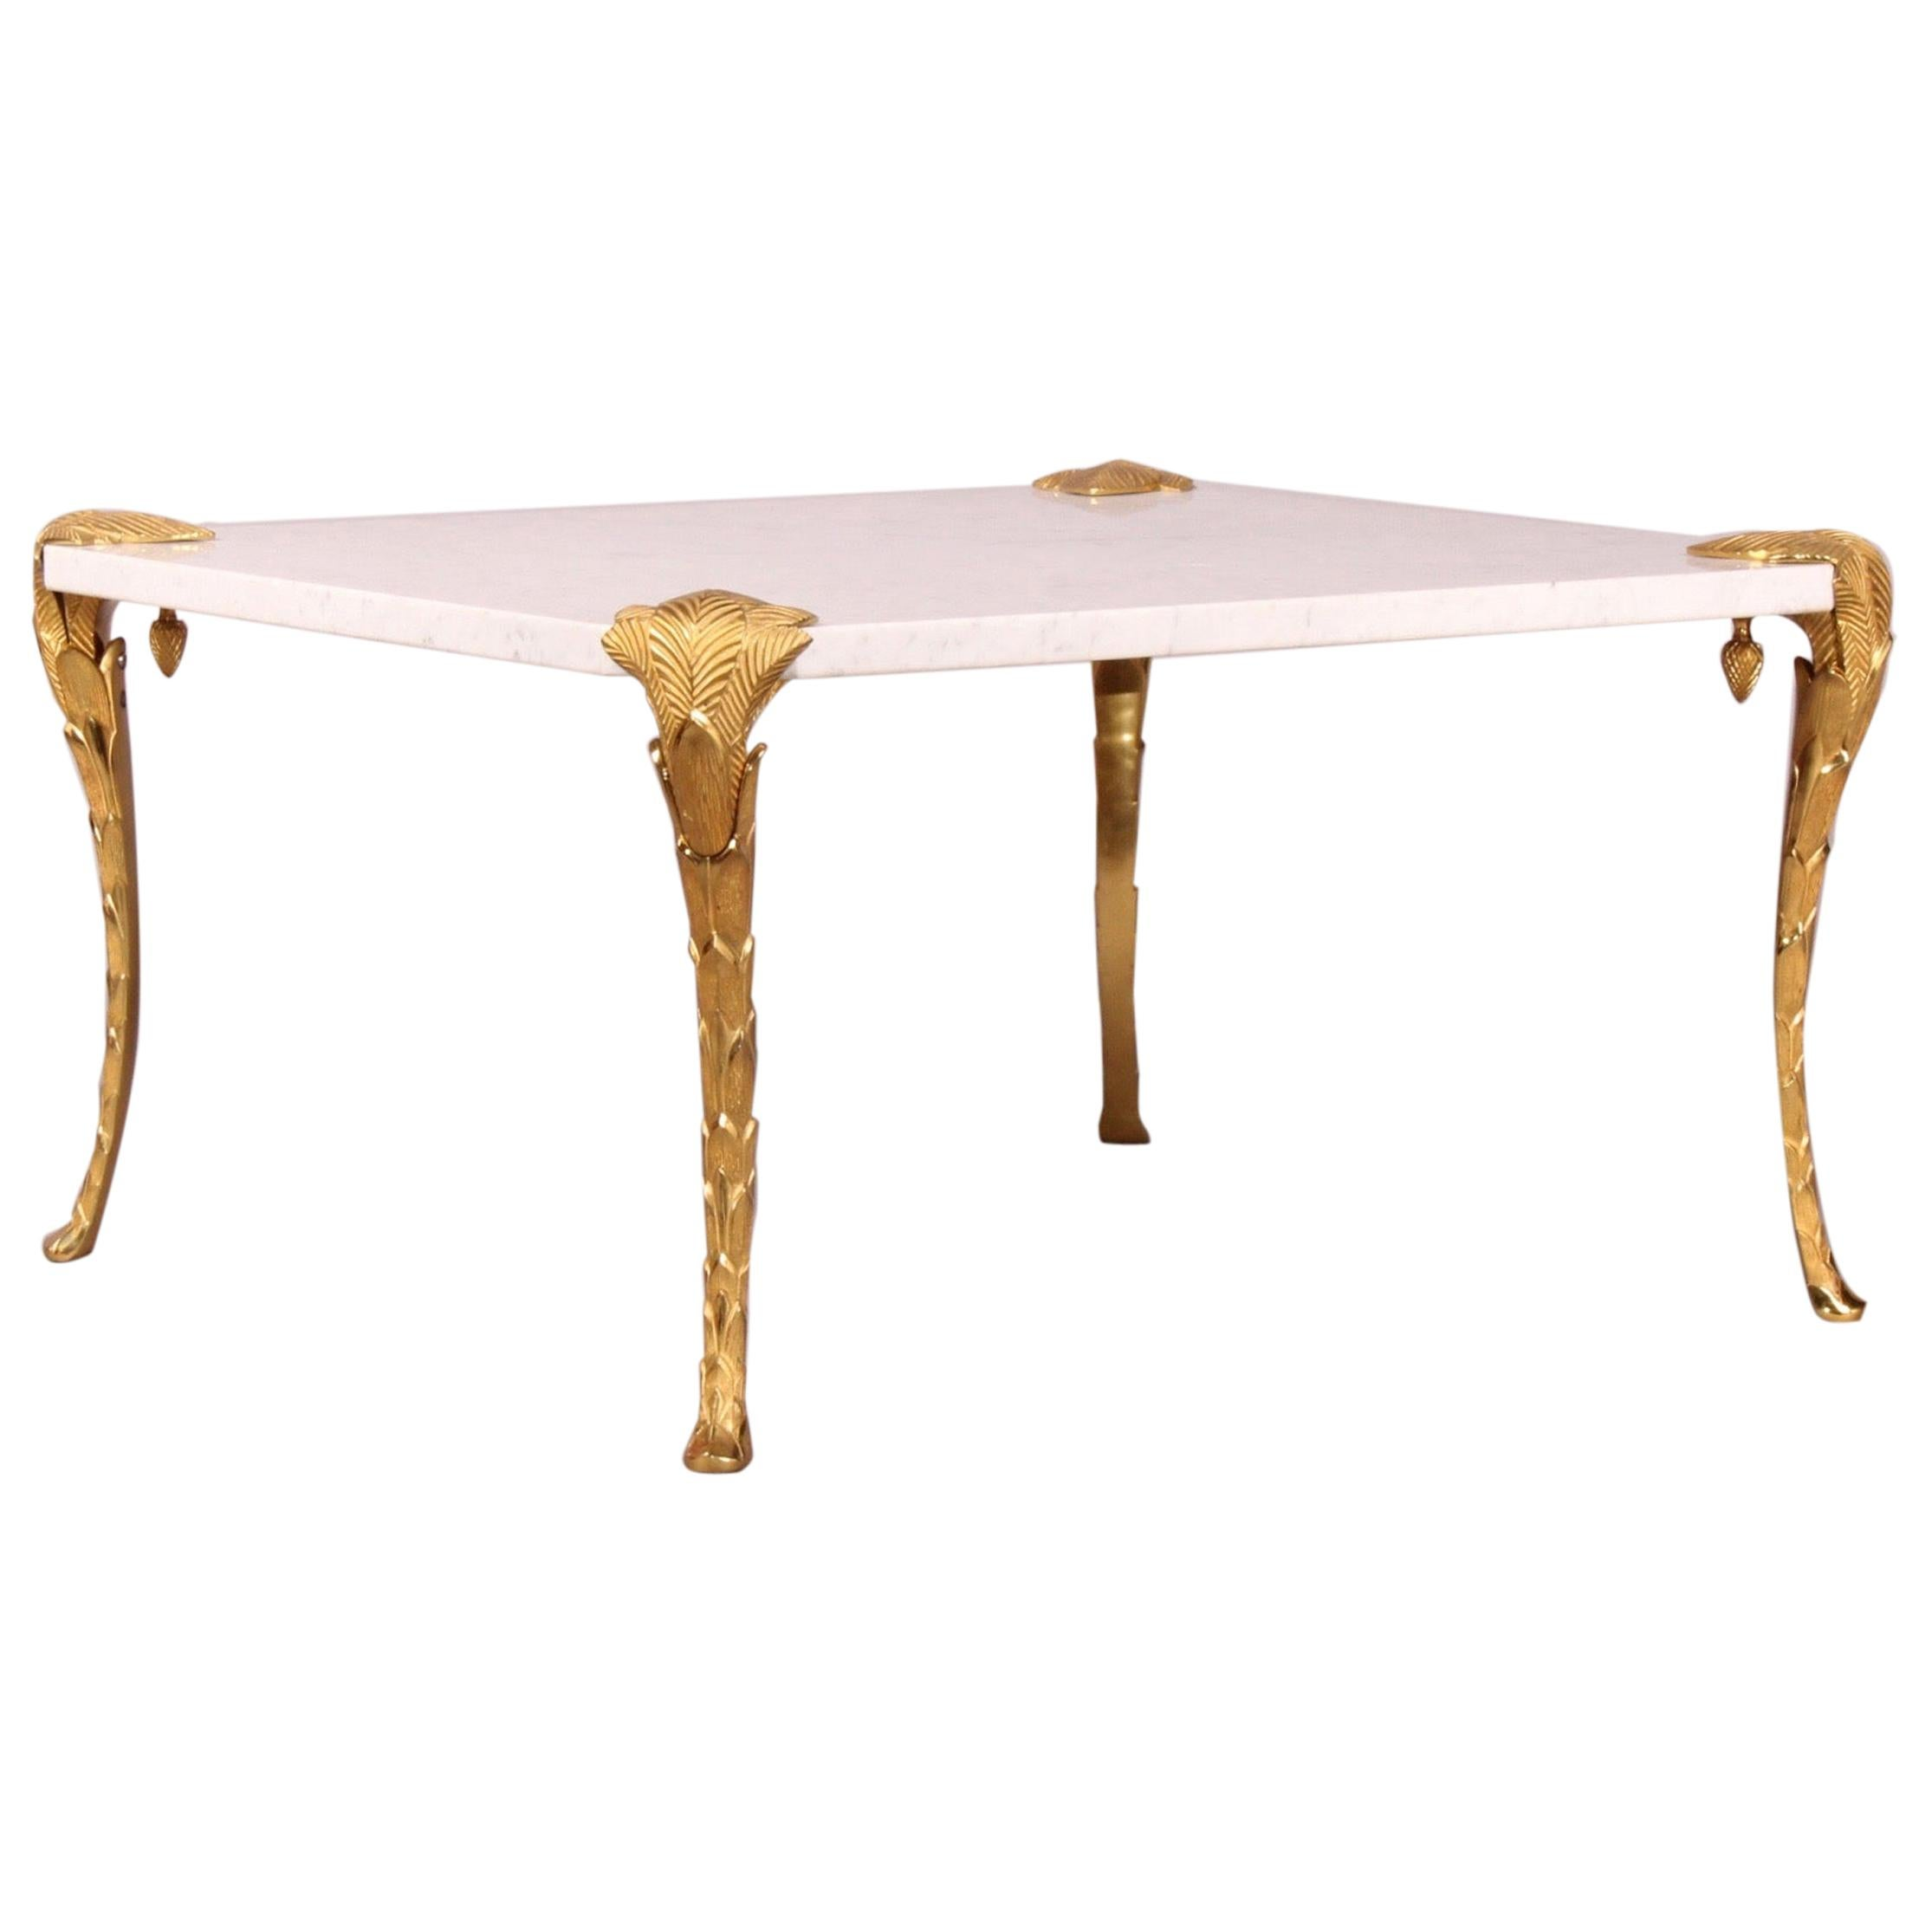 Maison Charles Bronze and Marble Coffee Table